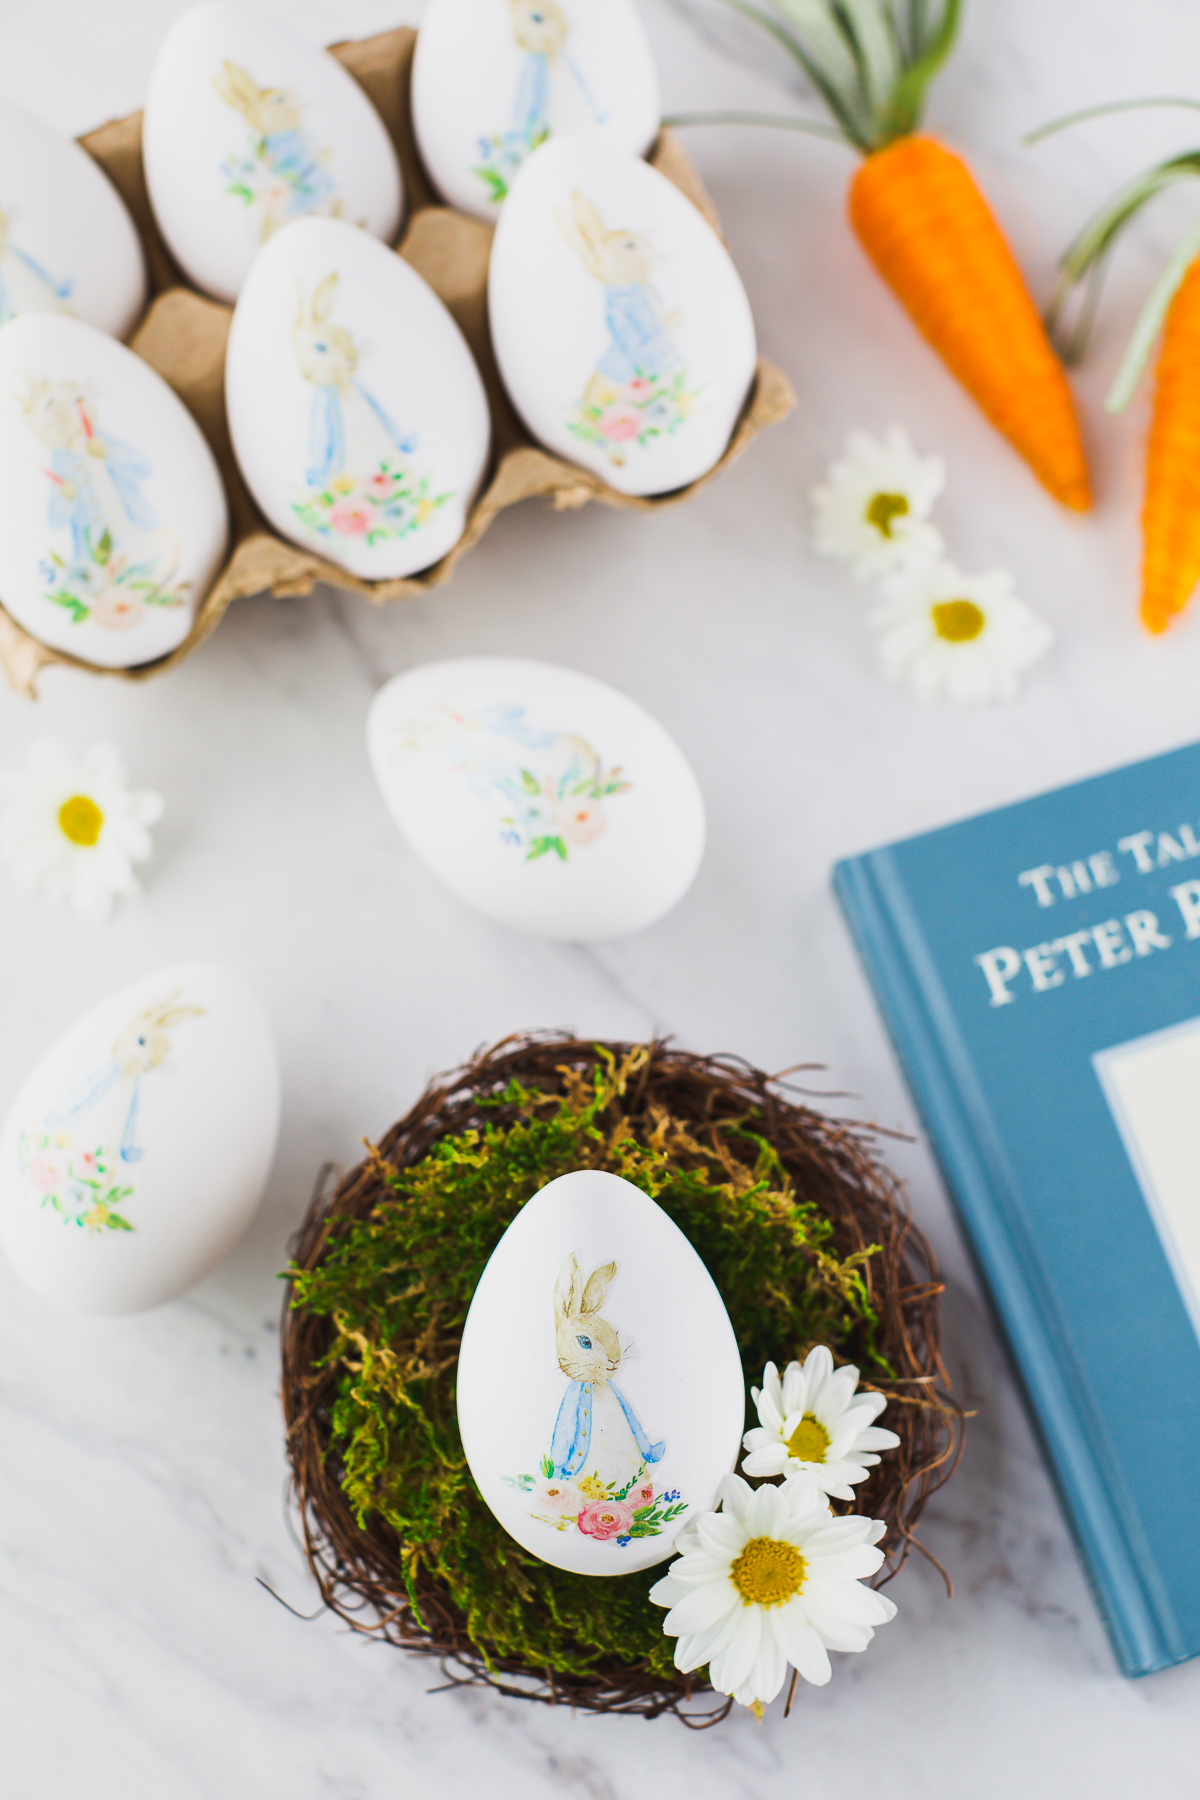 white craft eggs with watercolor bunny decal